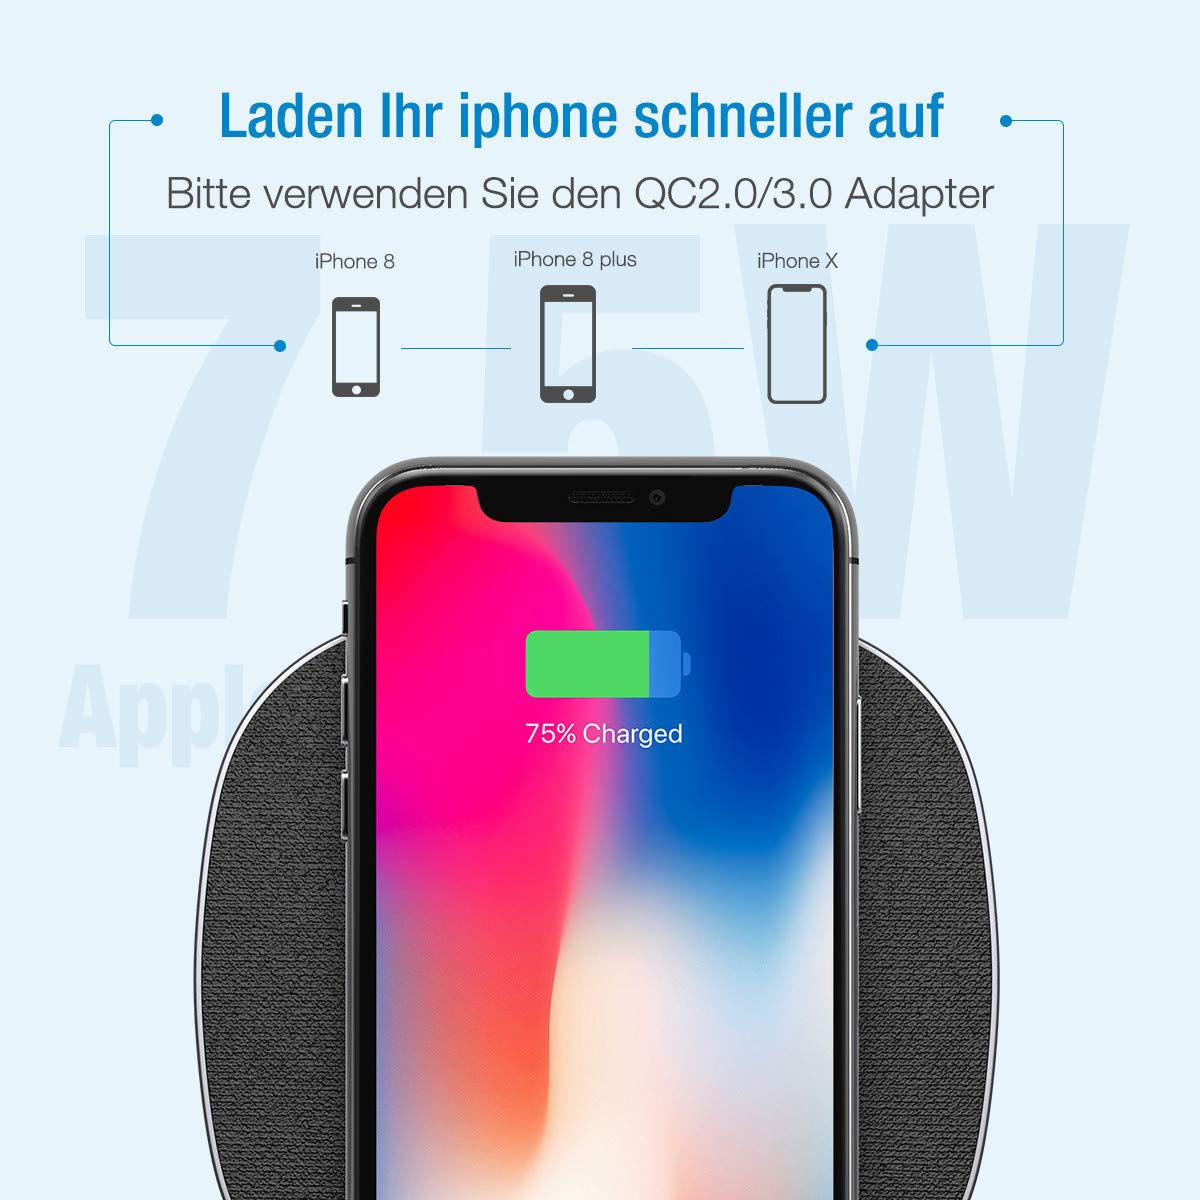 POWERADD Wireless Charger 10W Kabelloses Ladegerät Qi Induktive Ladestation für iPhone 8 / 8 Plus, iPhone X, Samsung Galaxy S9/ S8 Plus / S8+ /S8 / S7 / S7 Edge / S6 / S6 Edge, Nexus, NOKIA Lumia, HTC 8X, LG G3 und alle Qi fähige Geräte